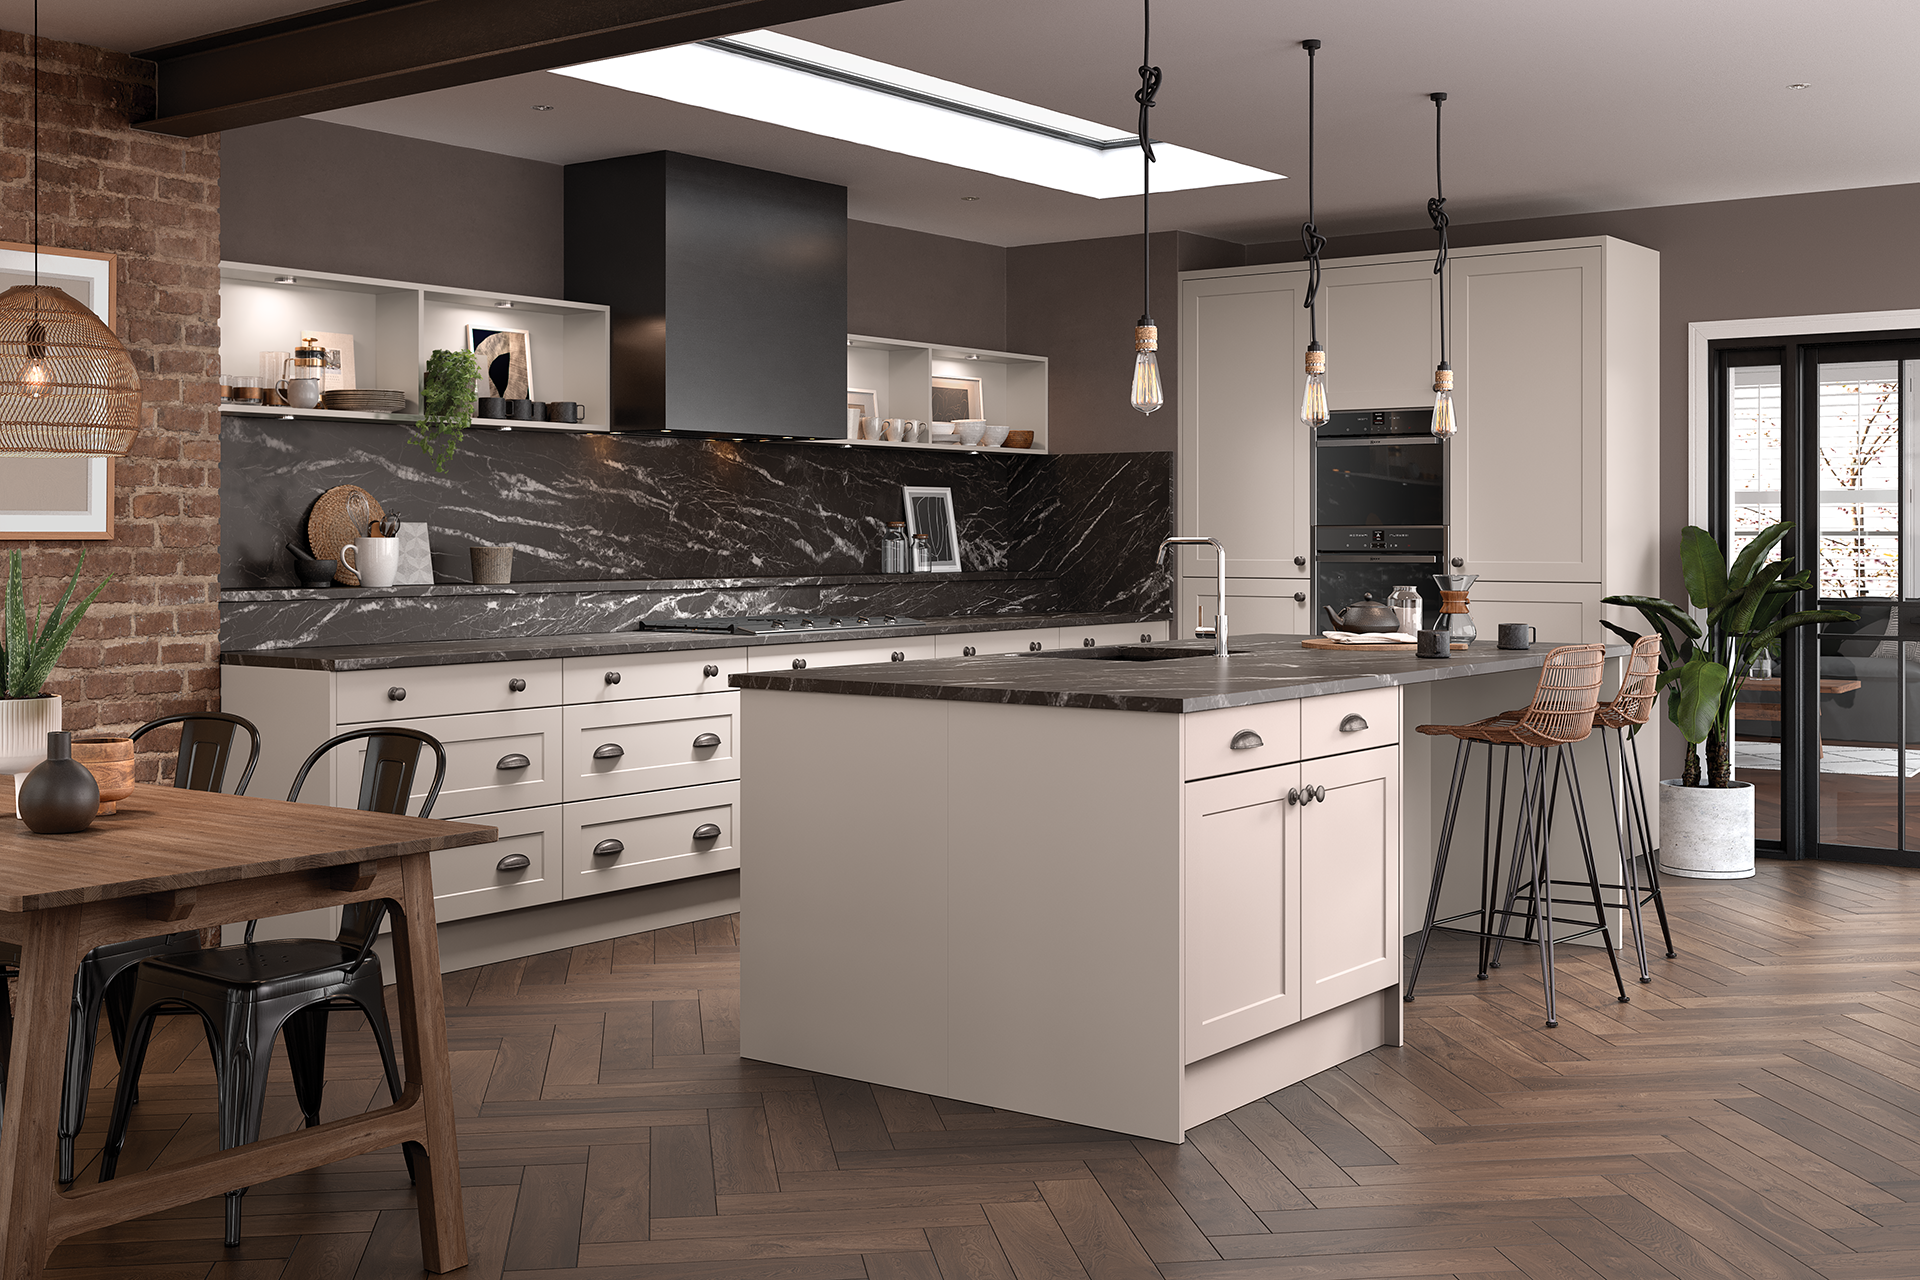 Top 5 Tips to Make your Kitchen the Heart of the Home